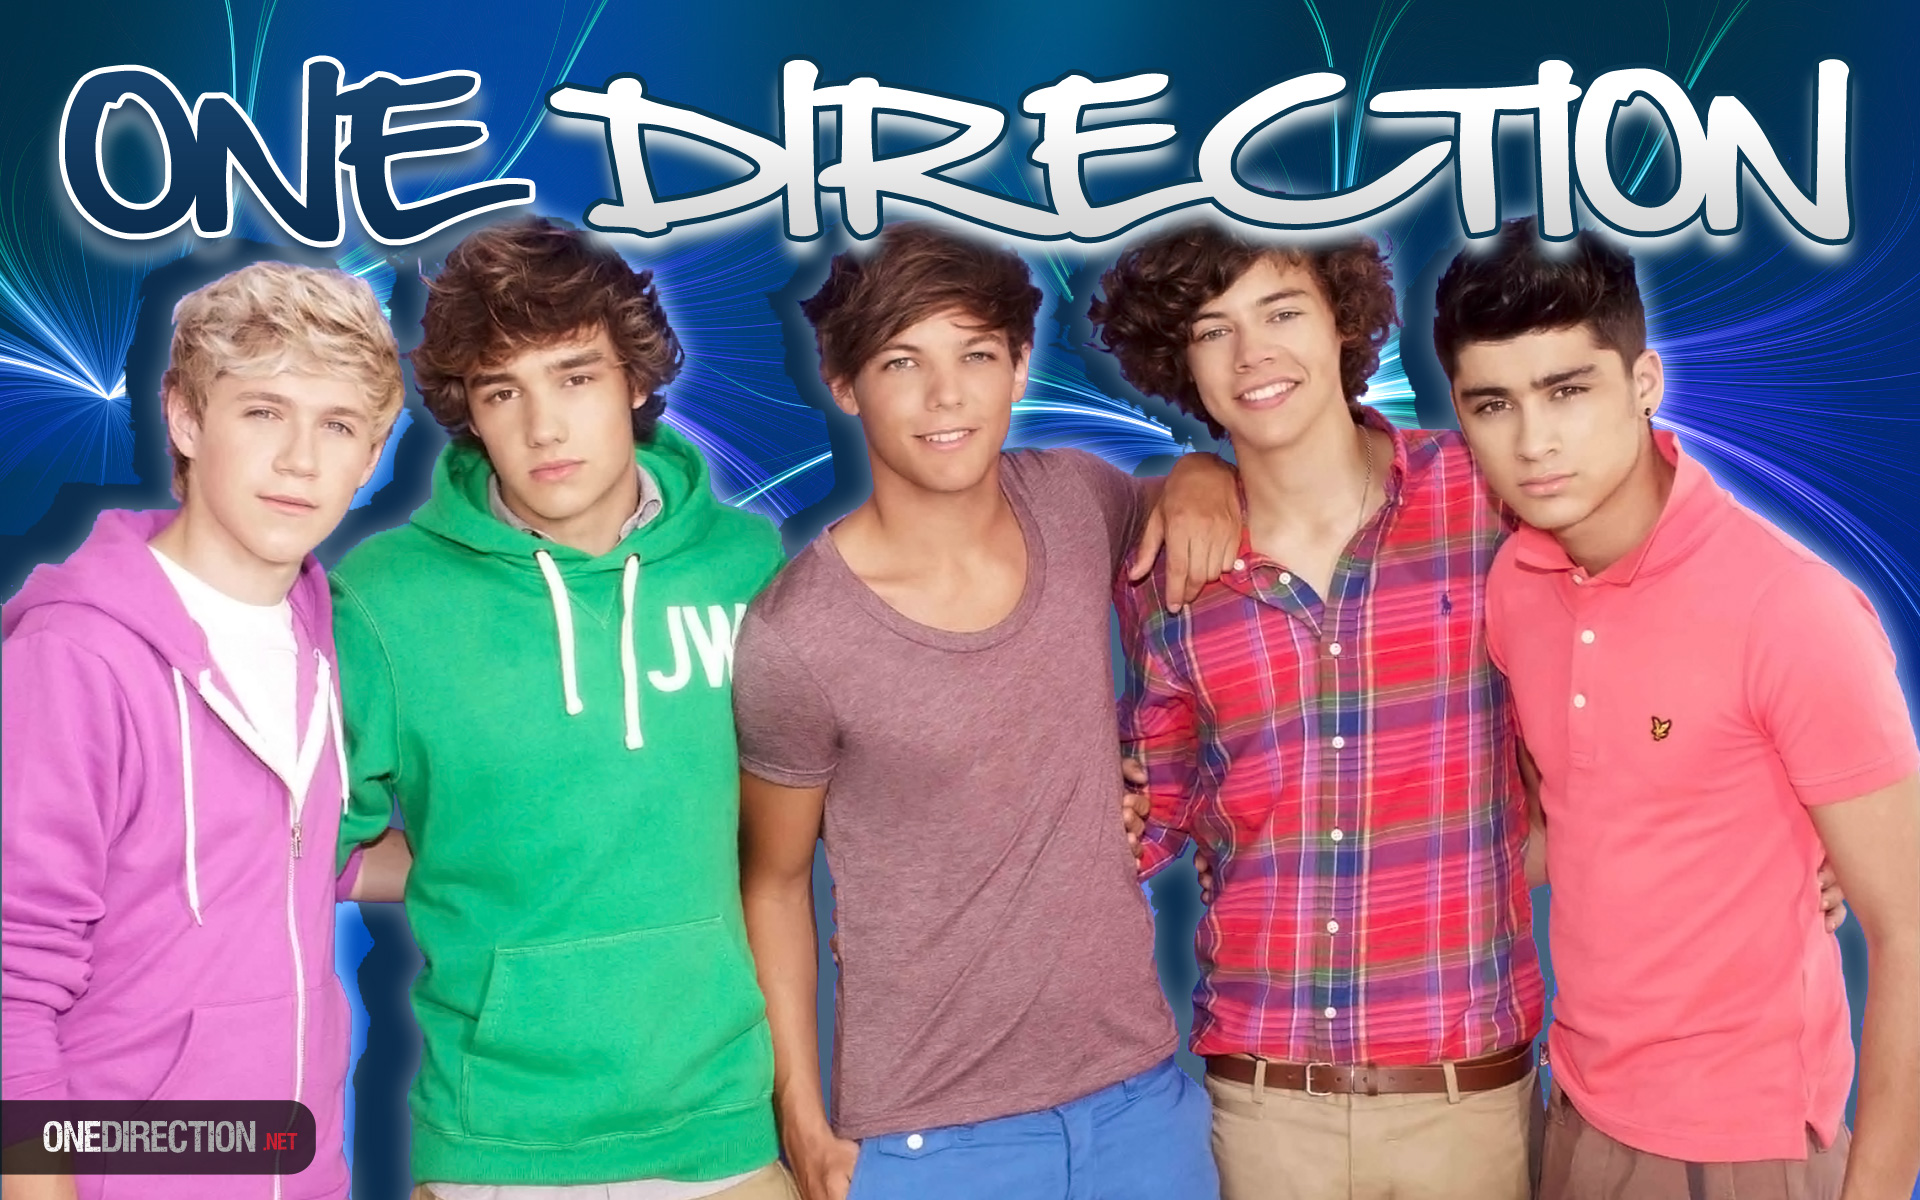 One Direction Wallpapers PC Mac IPhone Android 1920x1200